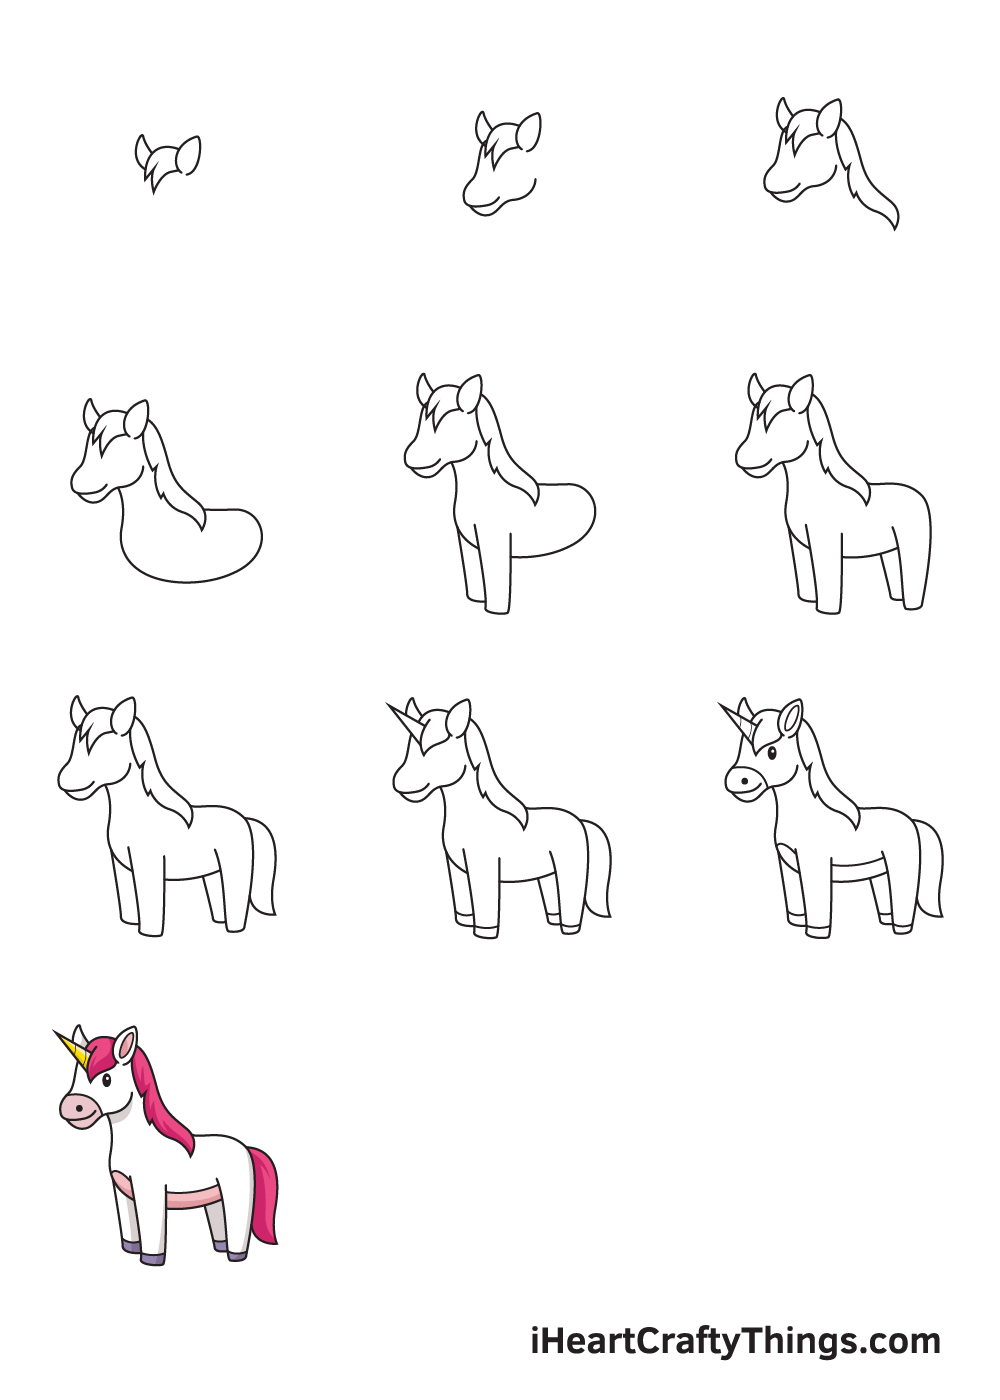 drawing unicorn in 9 easy steps